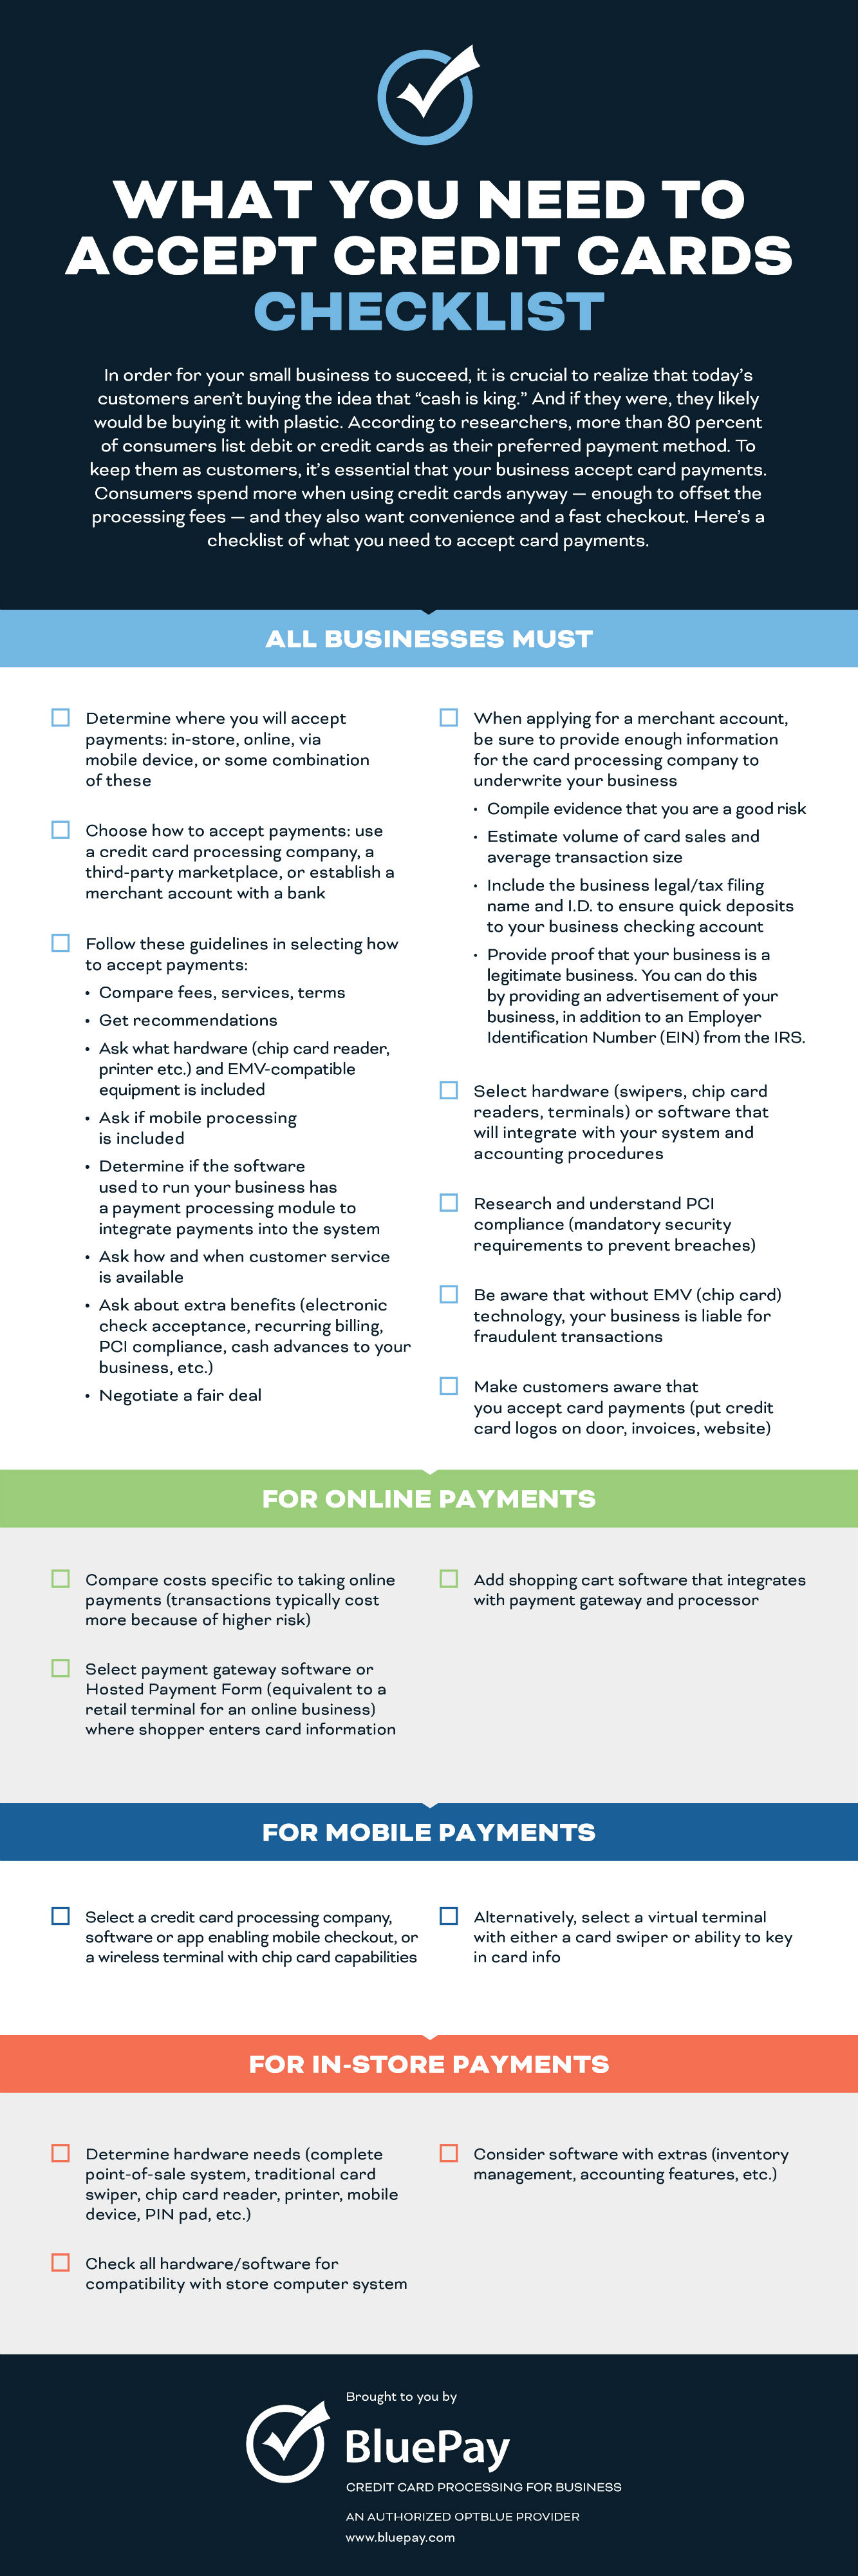 What You Need To Accept Credit Cards Checklist [Infographic]